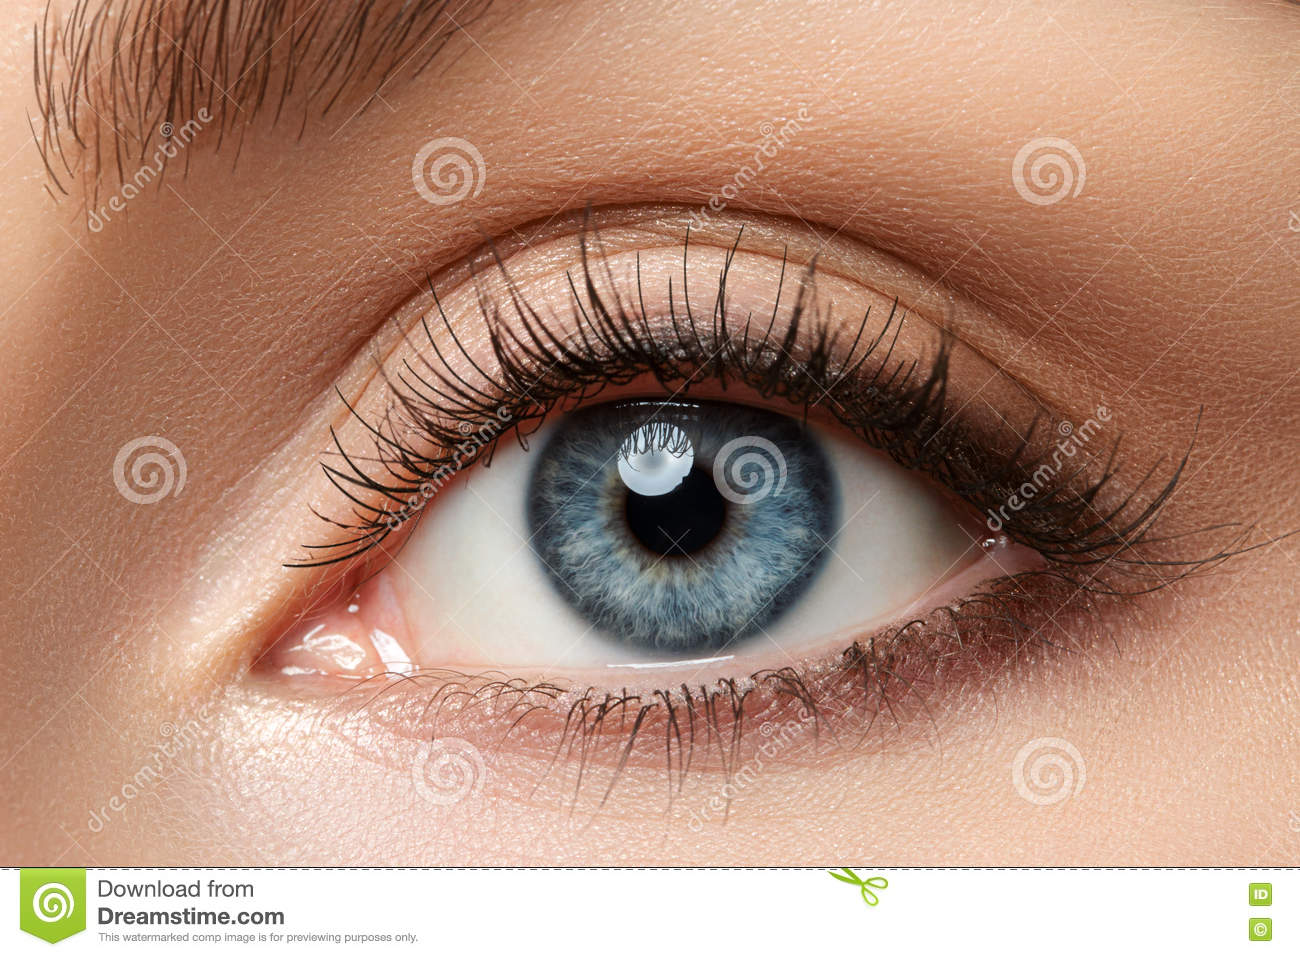 how to get good eye vision